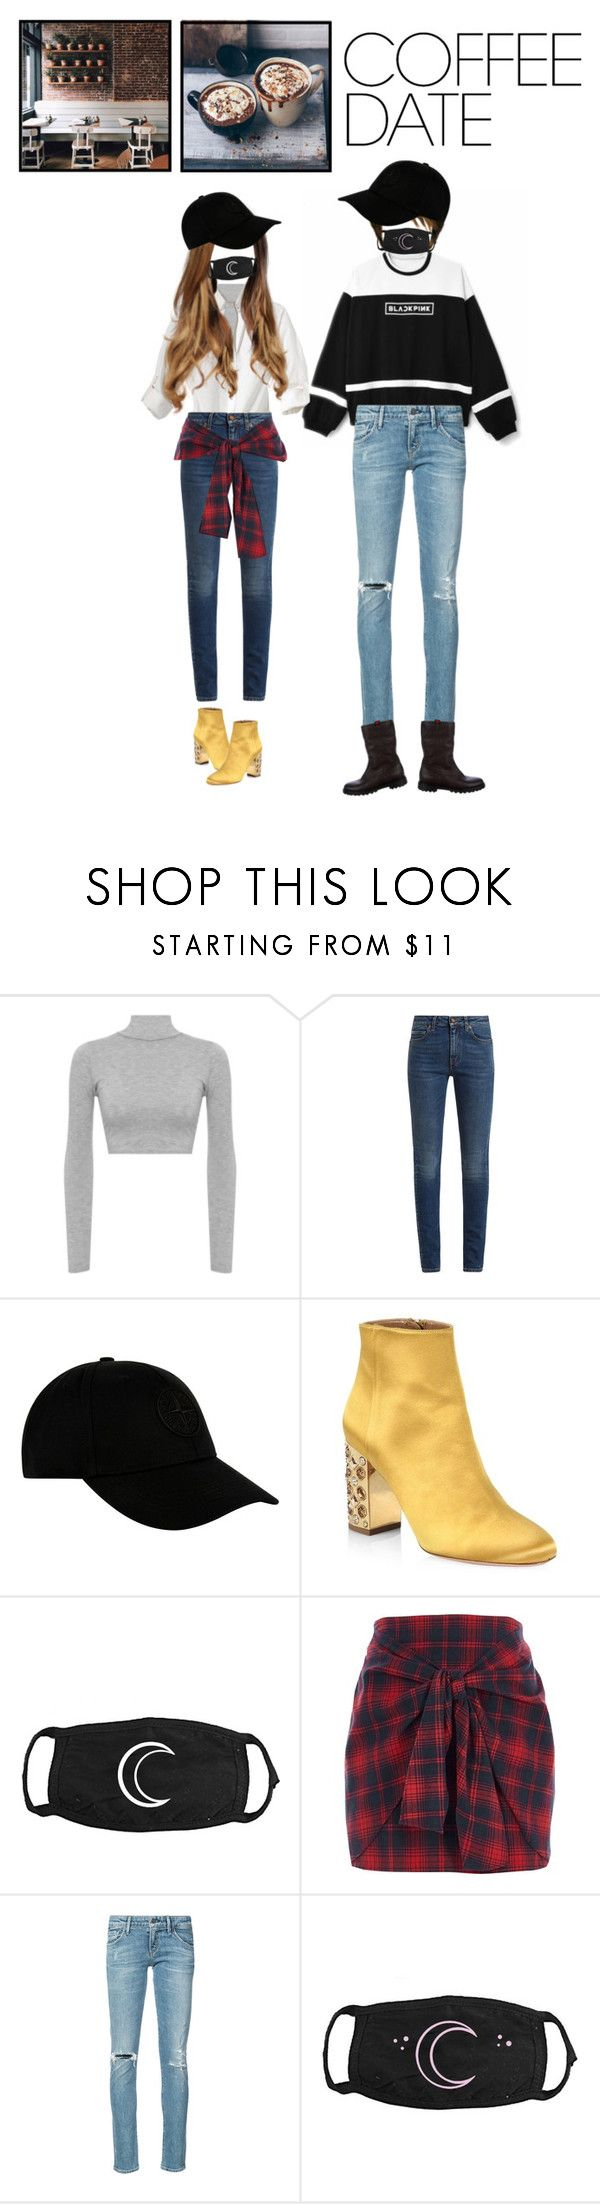 """""""Untitled #174"""" by shoylove-1 ❤ liked on Polyvore featuring WearAll, Yves Saint Laurent, STONE ISLAND, Aquazzura, River Island, Citizens of Humanity, Gucci, Coffee Shop and CoffeeDate"""